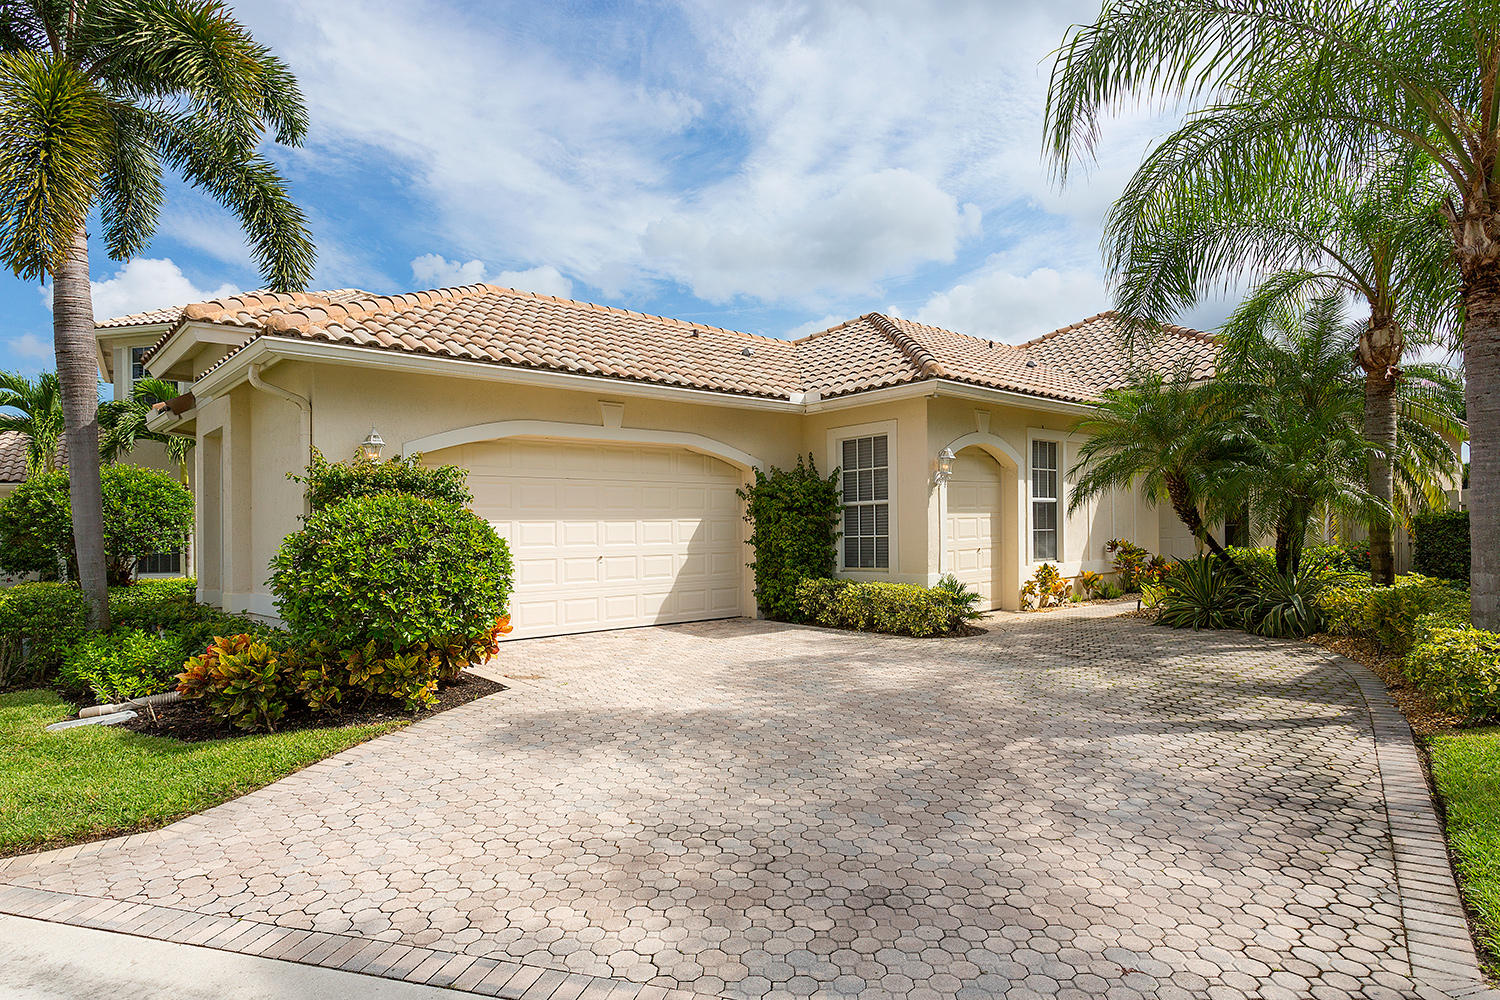 2570 Players Court, Wellington, Florida 33414, 3 Bedrooms Bedrooms, ,3.1 BathroomsBathrooms,Single Family,For Rent,Palm Beach Polo,Players,1,RX-10461505